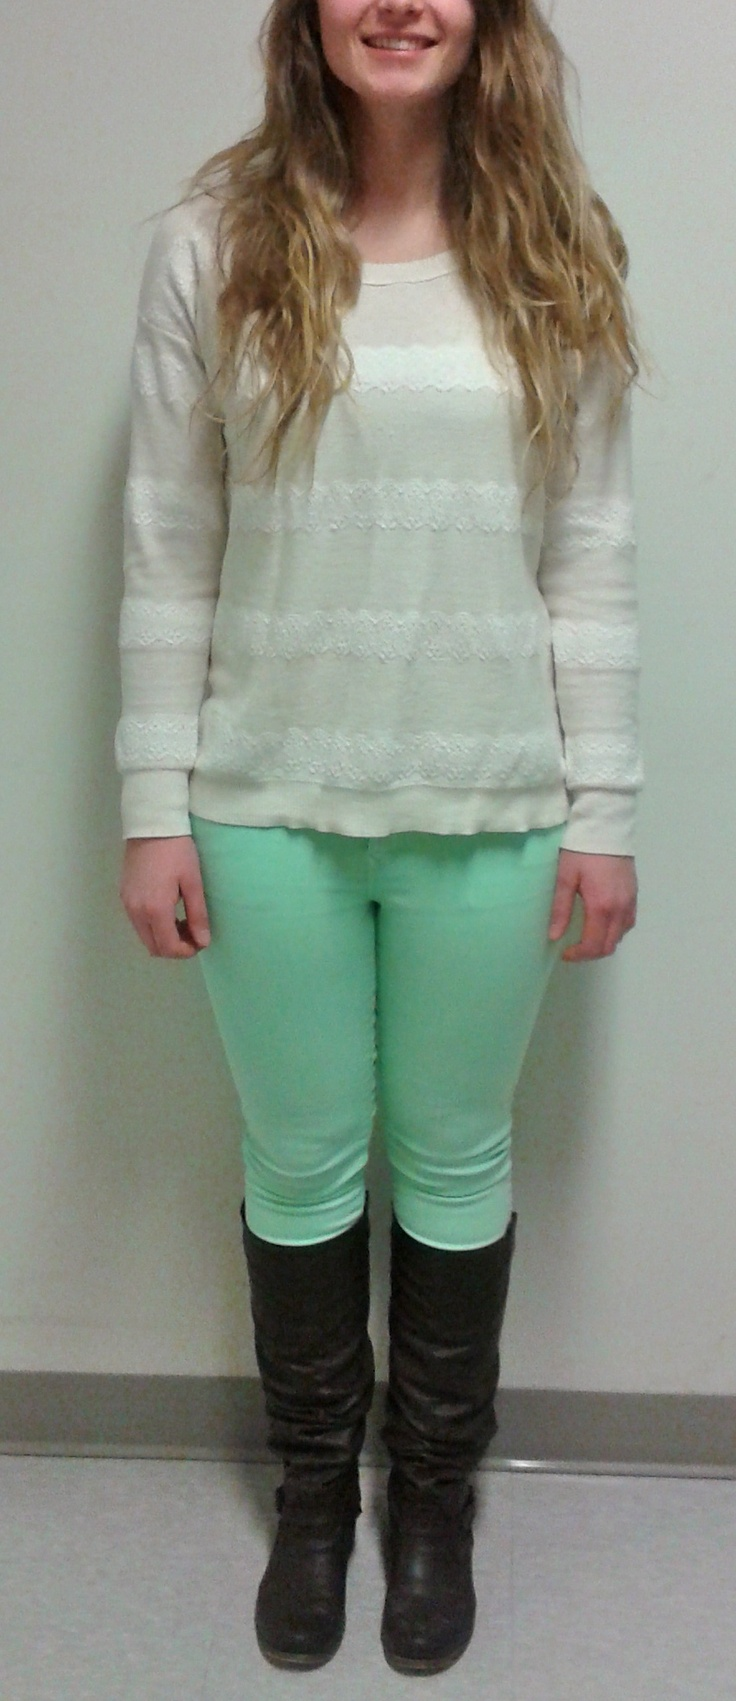 Sara pulls off these fantastic mint jeans well by pairing them with a white sweater that has lace stripes, and tall boots. This outfit is really great, and totally functional for an 8:30 class! She told me afterwards that these jeans were a real steal found on the Gap sale rack!